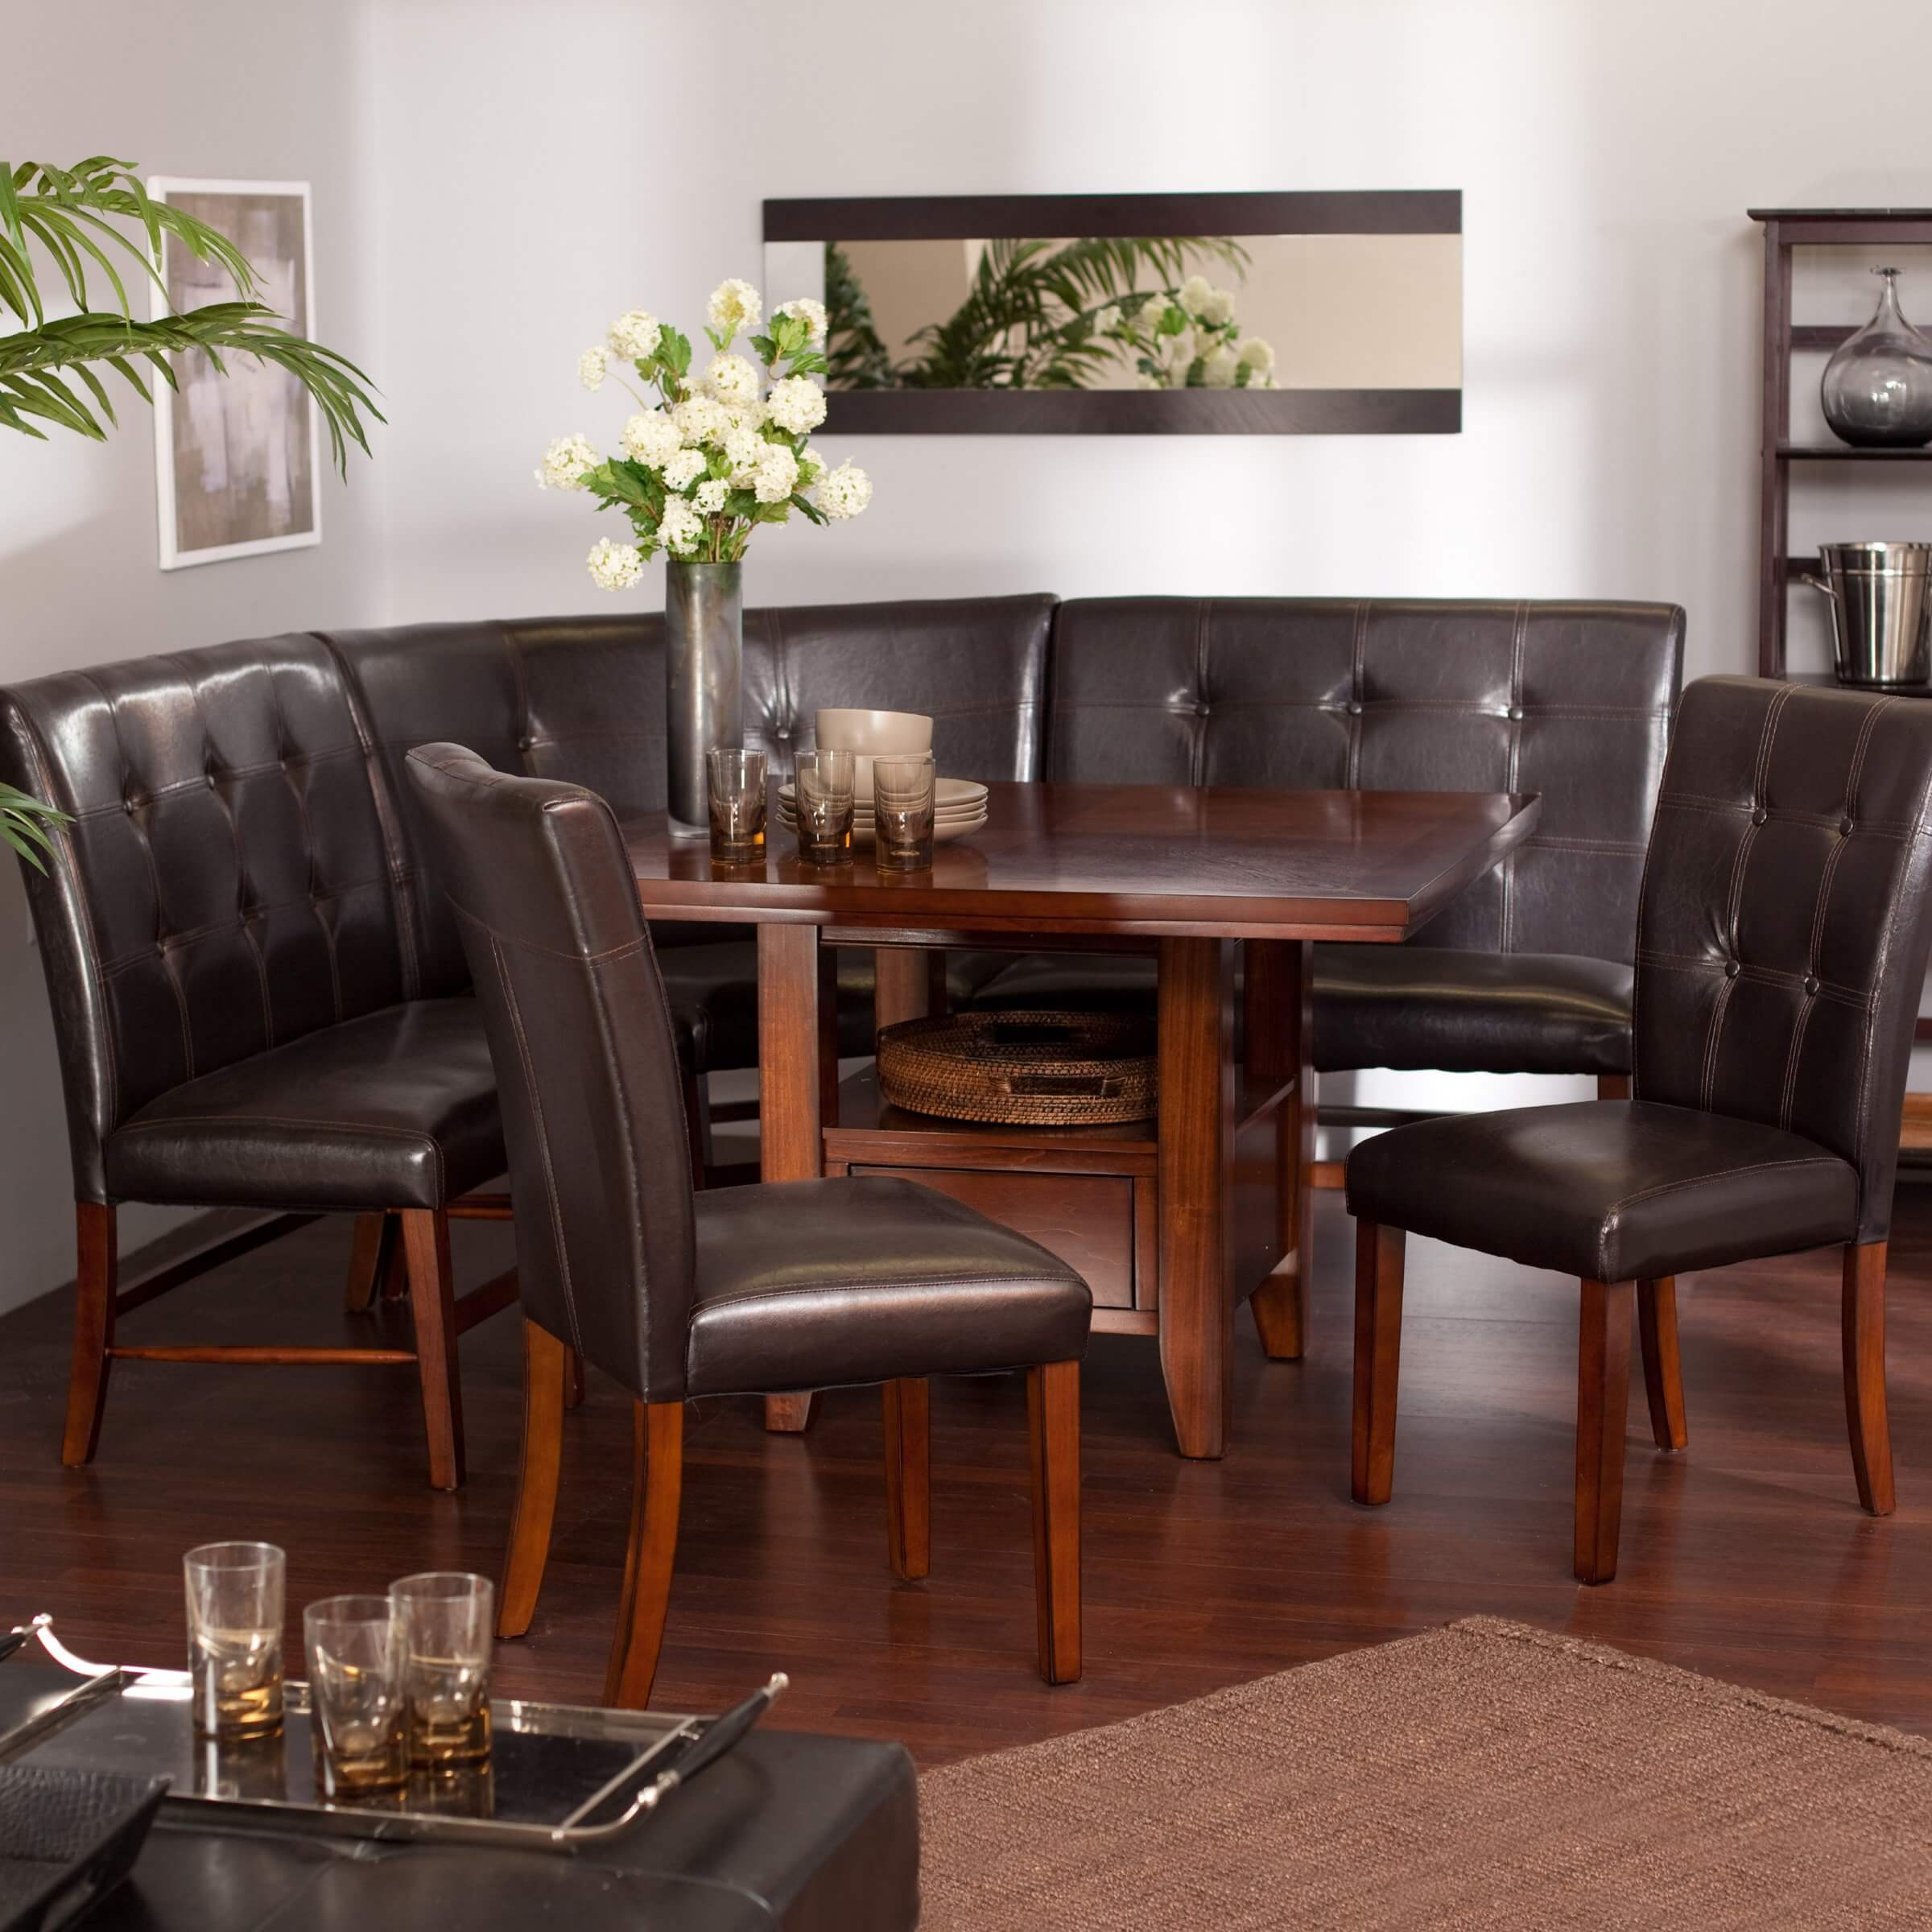 ^ ontemporary orner Nook Dining Set. simple tips for beautiful ...